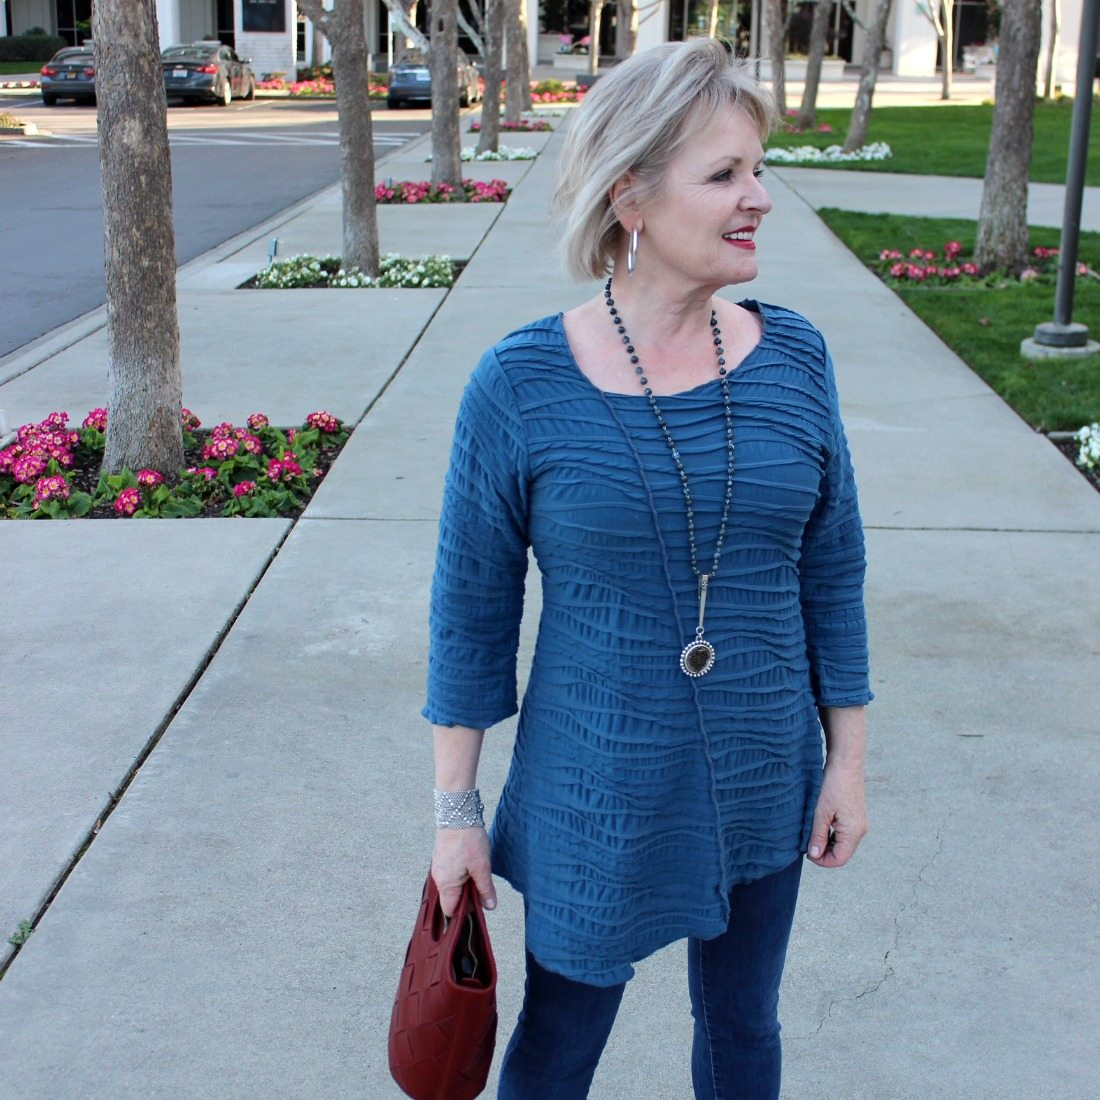 Look of the Week: Style That is Inherent